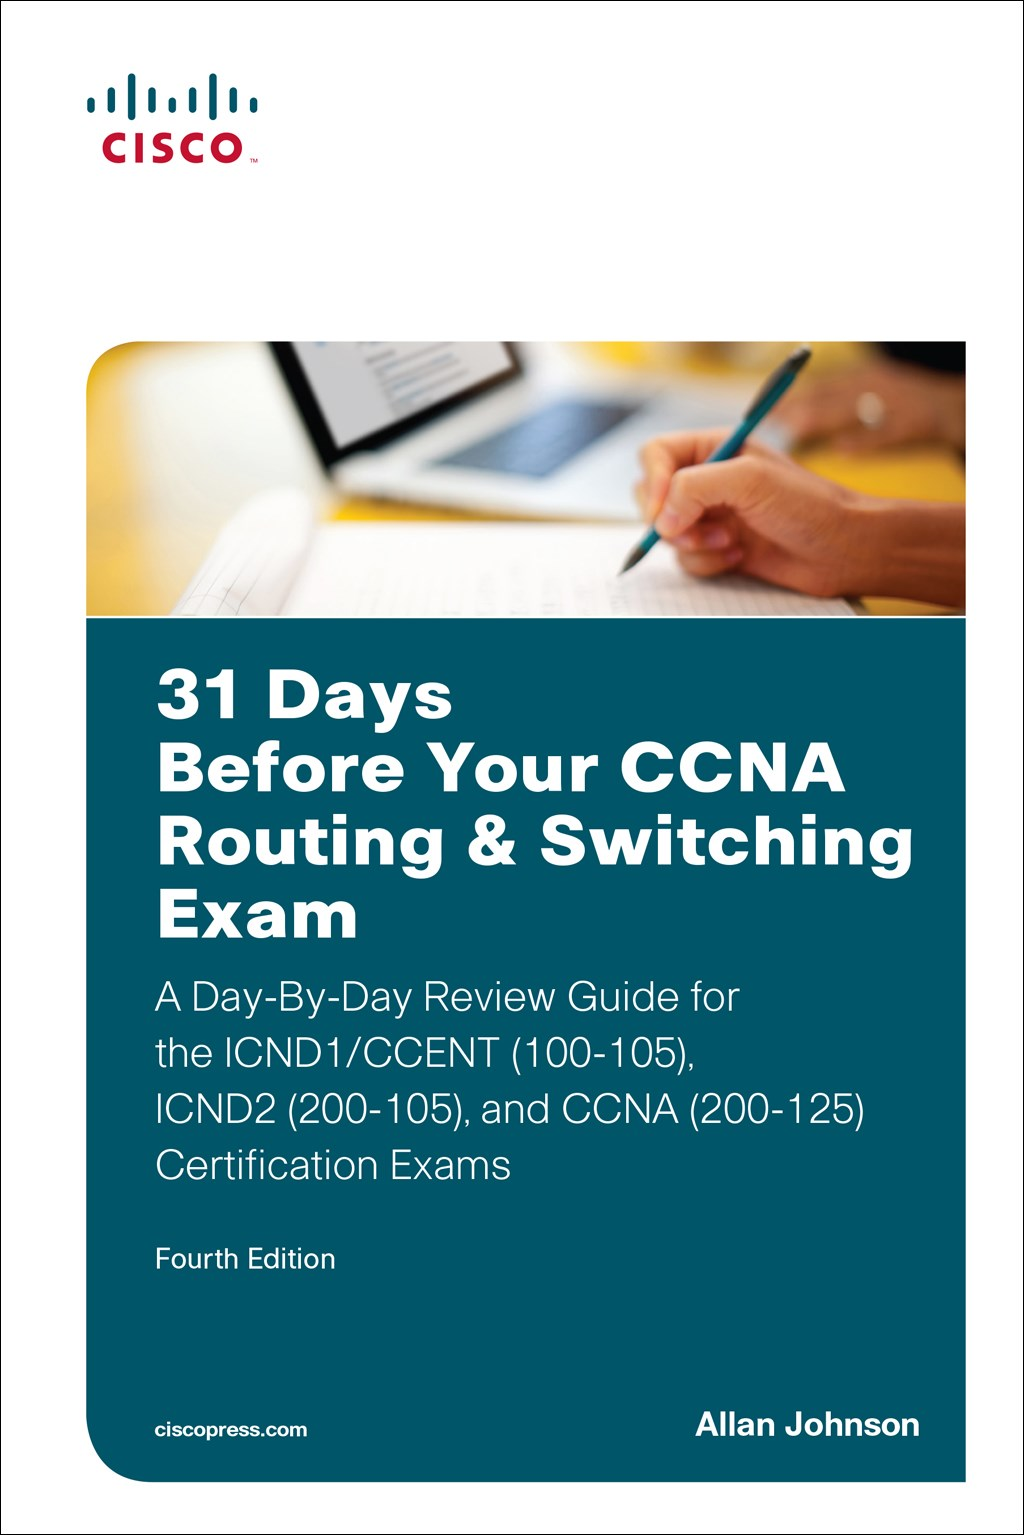 31 Days Before Your CCNA Routing & Switching Exam (Digital Study Guide): A Media-Rich, Web Edition of the Day-By-Day Review Guide for the ICND1 (100-105), ICND2 (200-105), and CCNA (200-125) Certification Exams, 2nd Edition